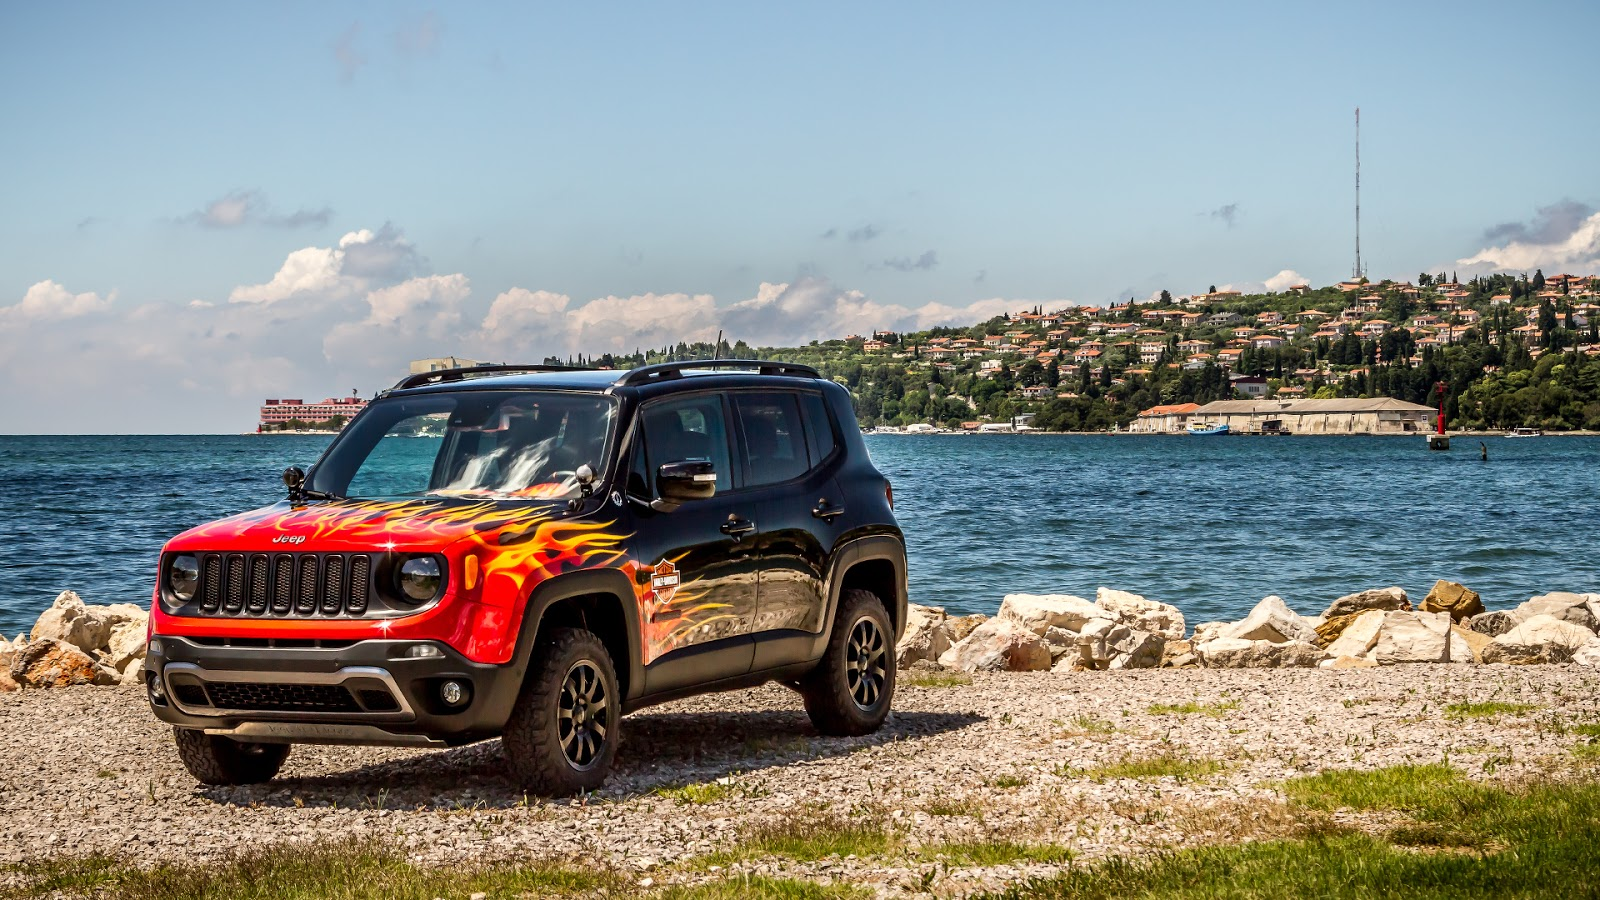 Renegade Race Fuel >> This Jeep Renegade is Flaming Hot, Celebrates 25th ...